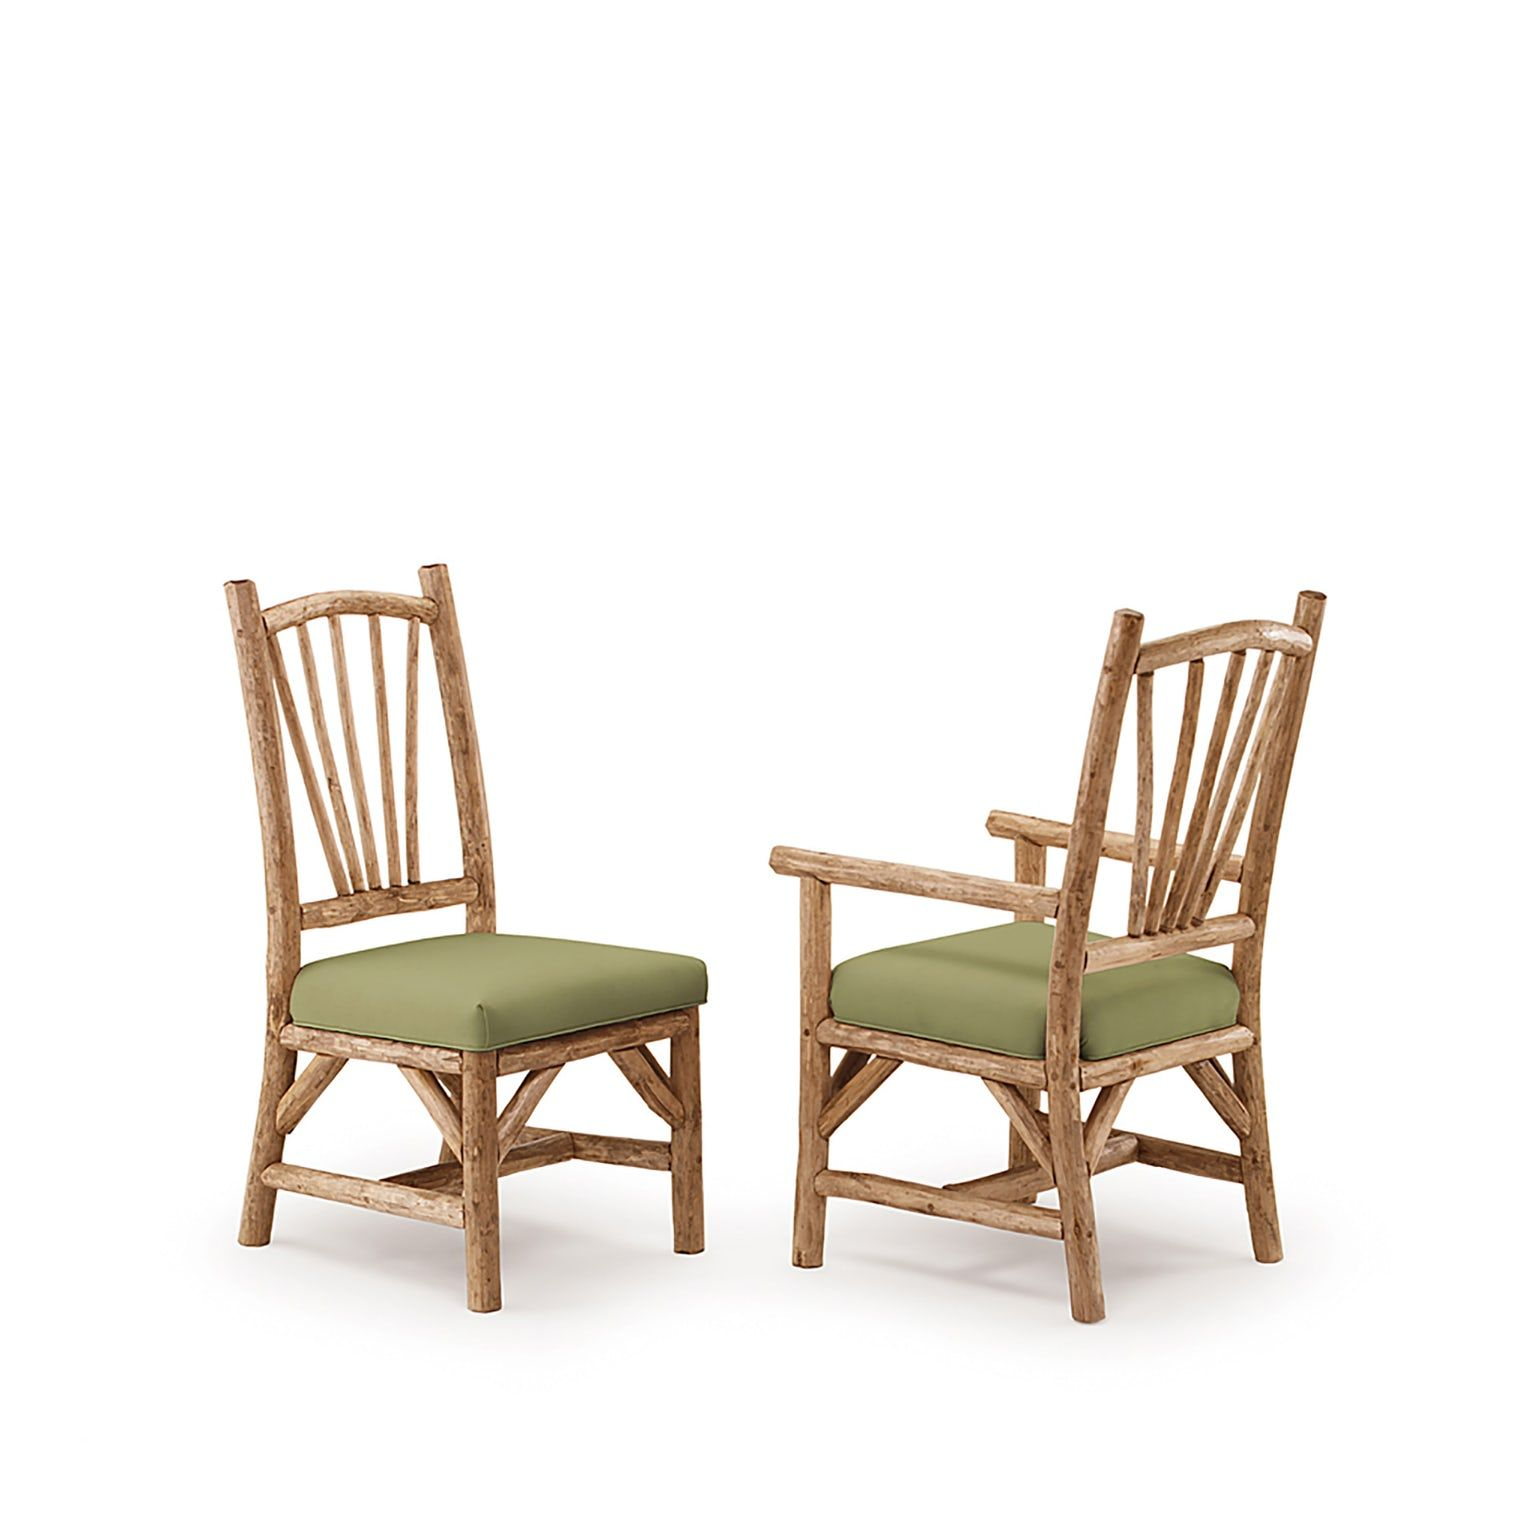 Rustic Side Chair 1154 Rustic Arm Chair 1156 Transitional, Rustic